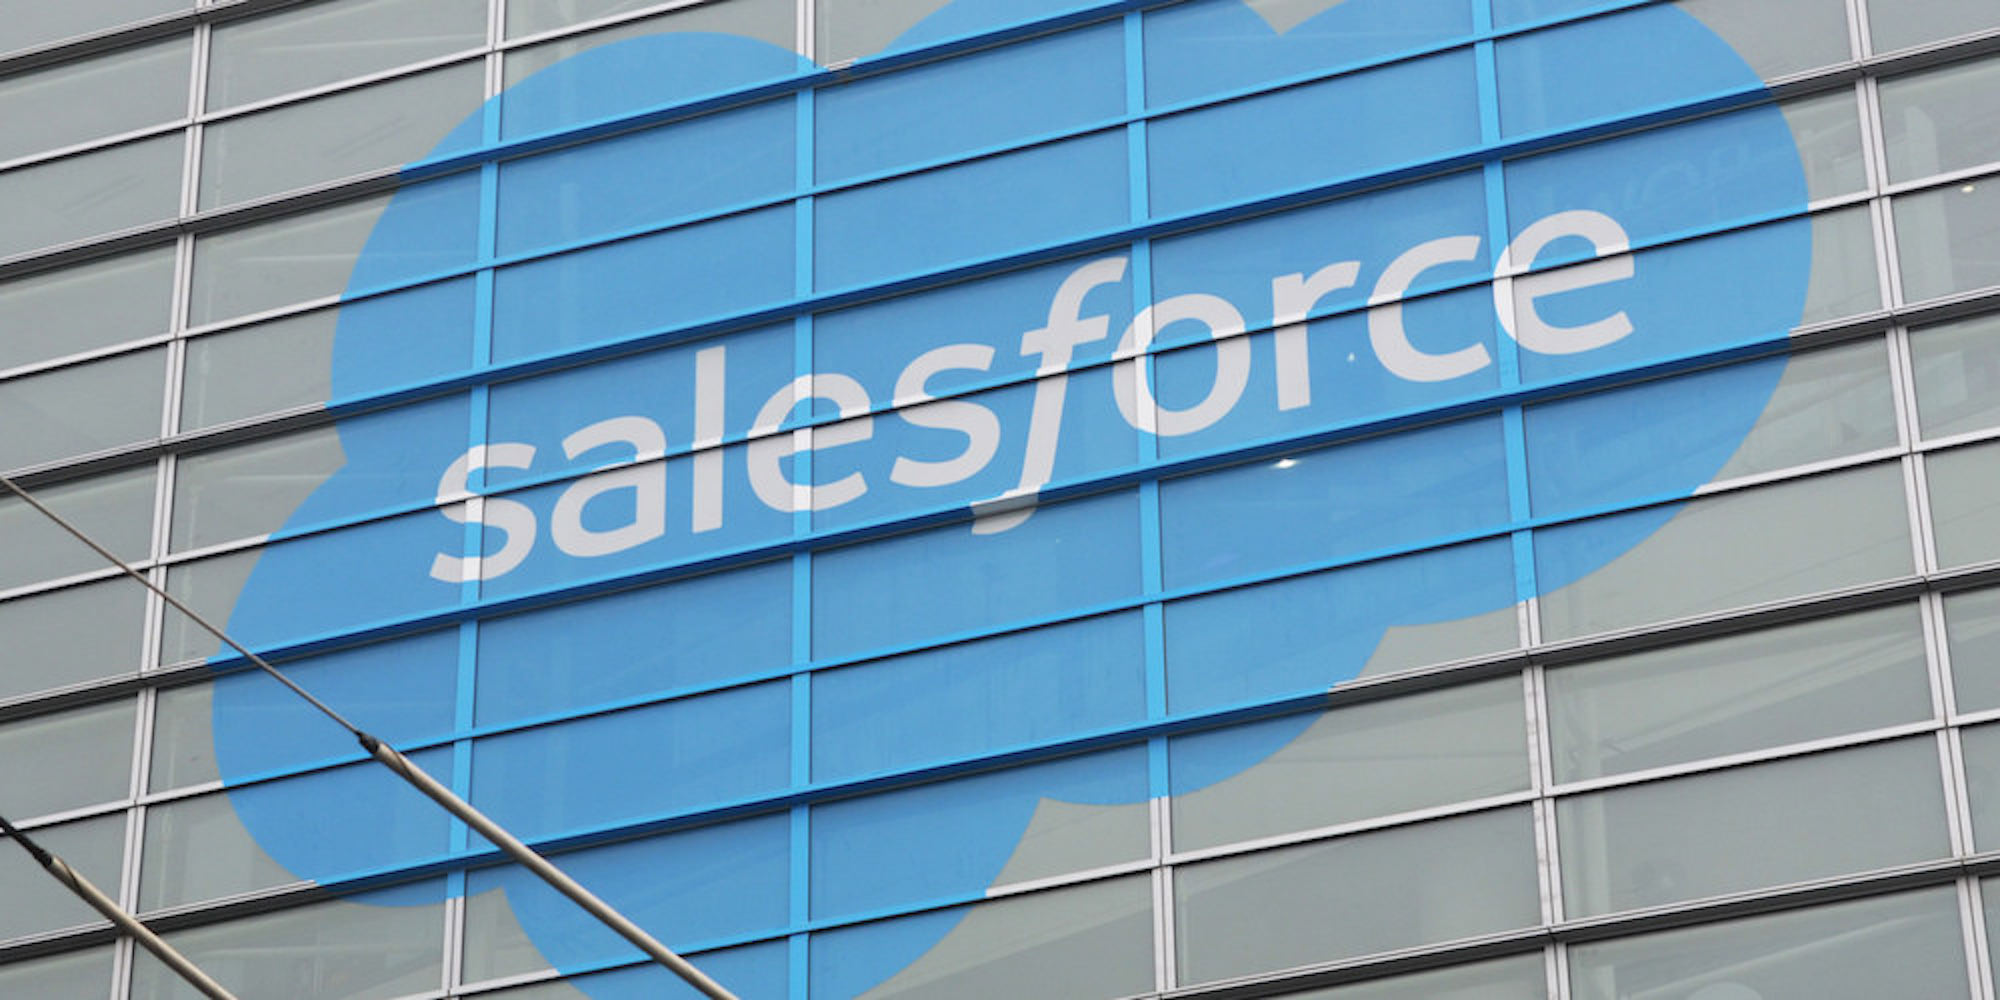 Become Certified As A Salesforce Trailblazer With The Help Of This